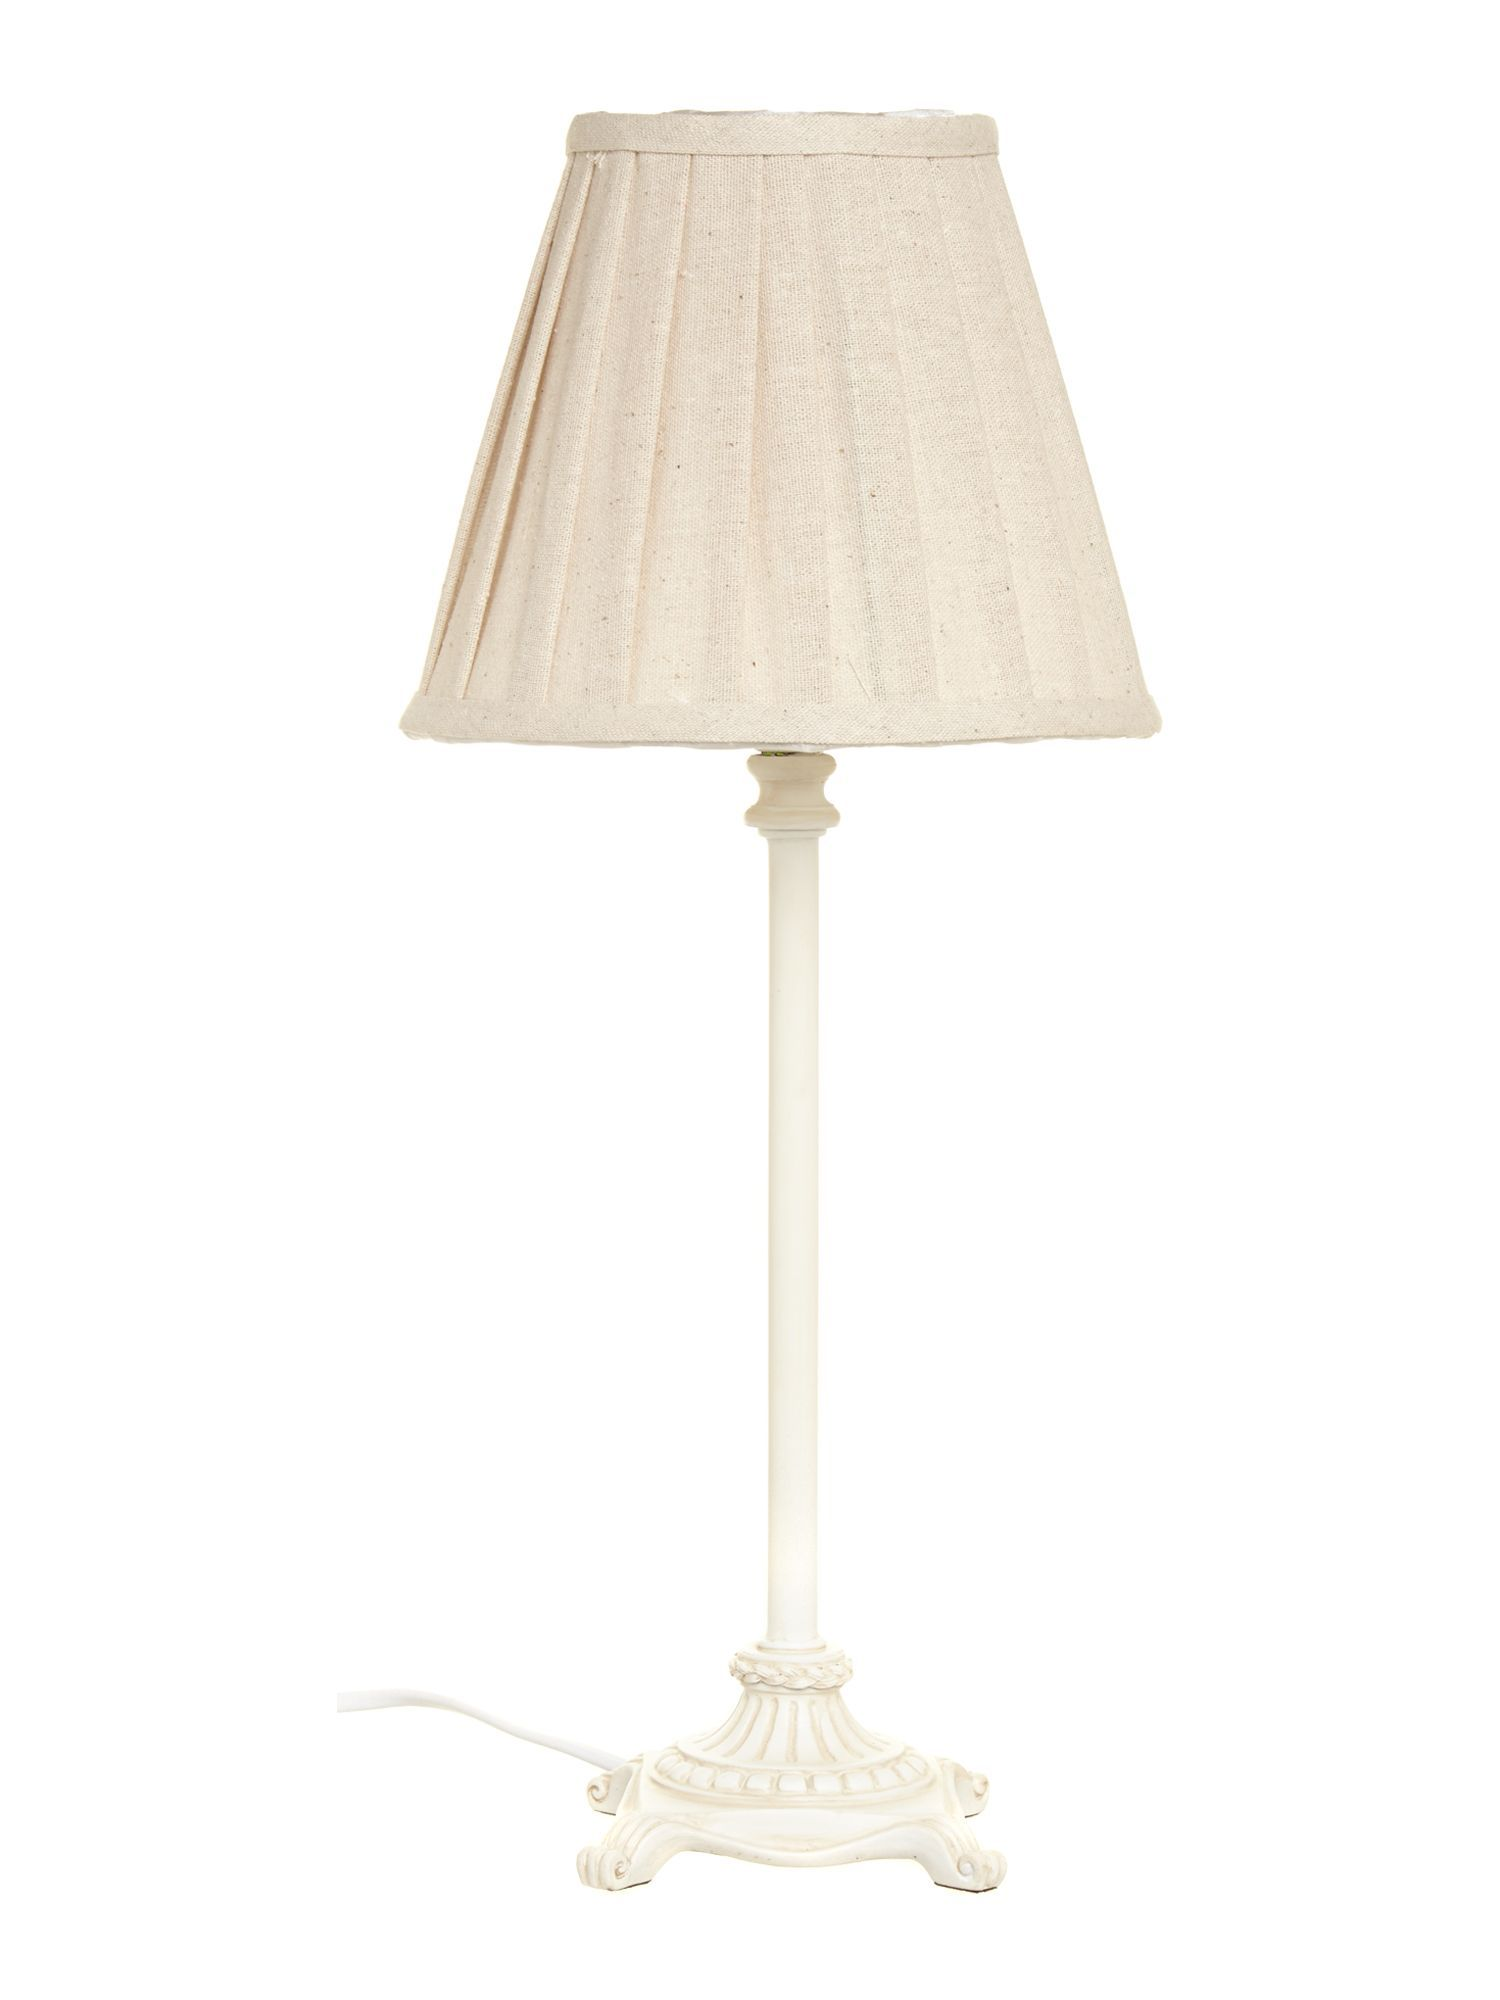 Image of Shabby Chic Bessie table lamp - natural